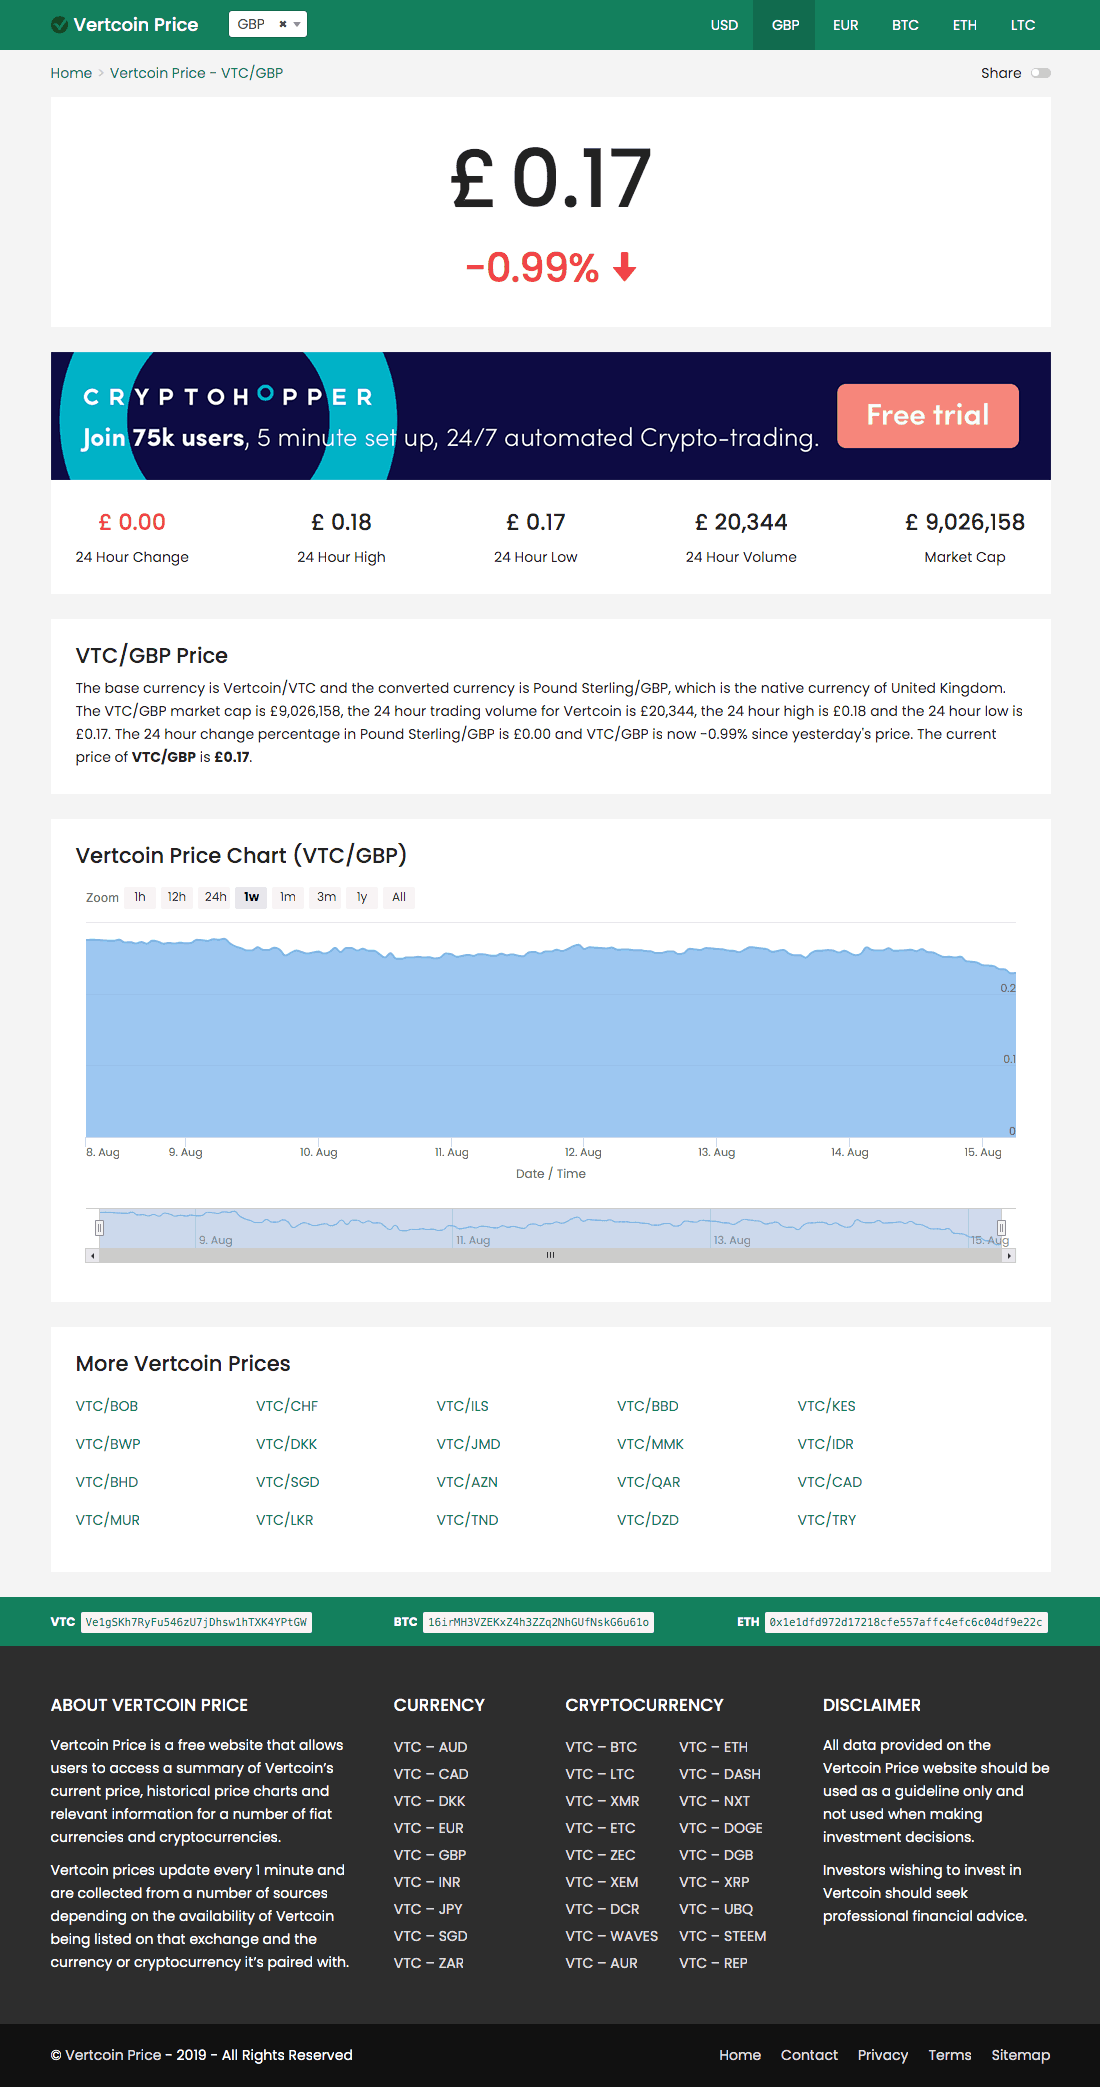 Vertcoin Price - Cryptocurrency